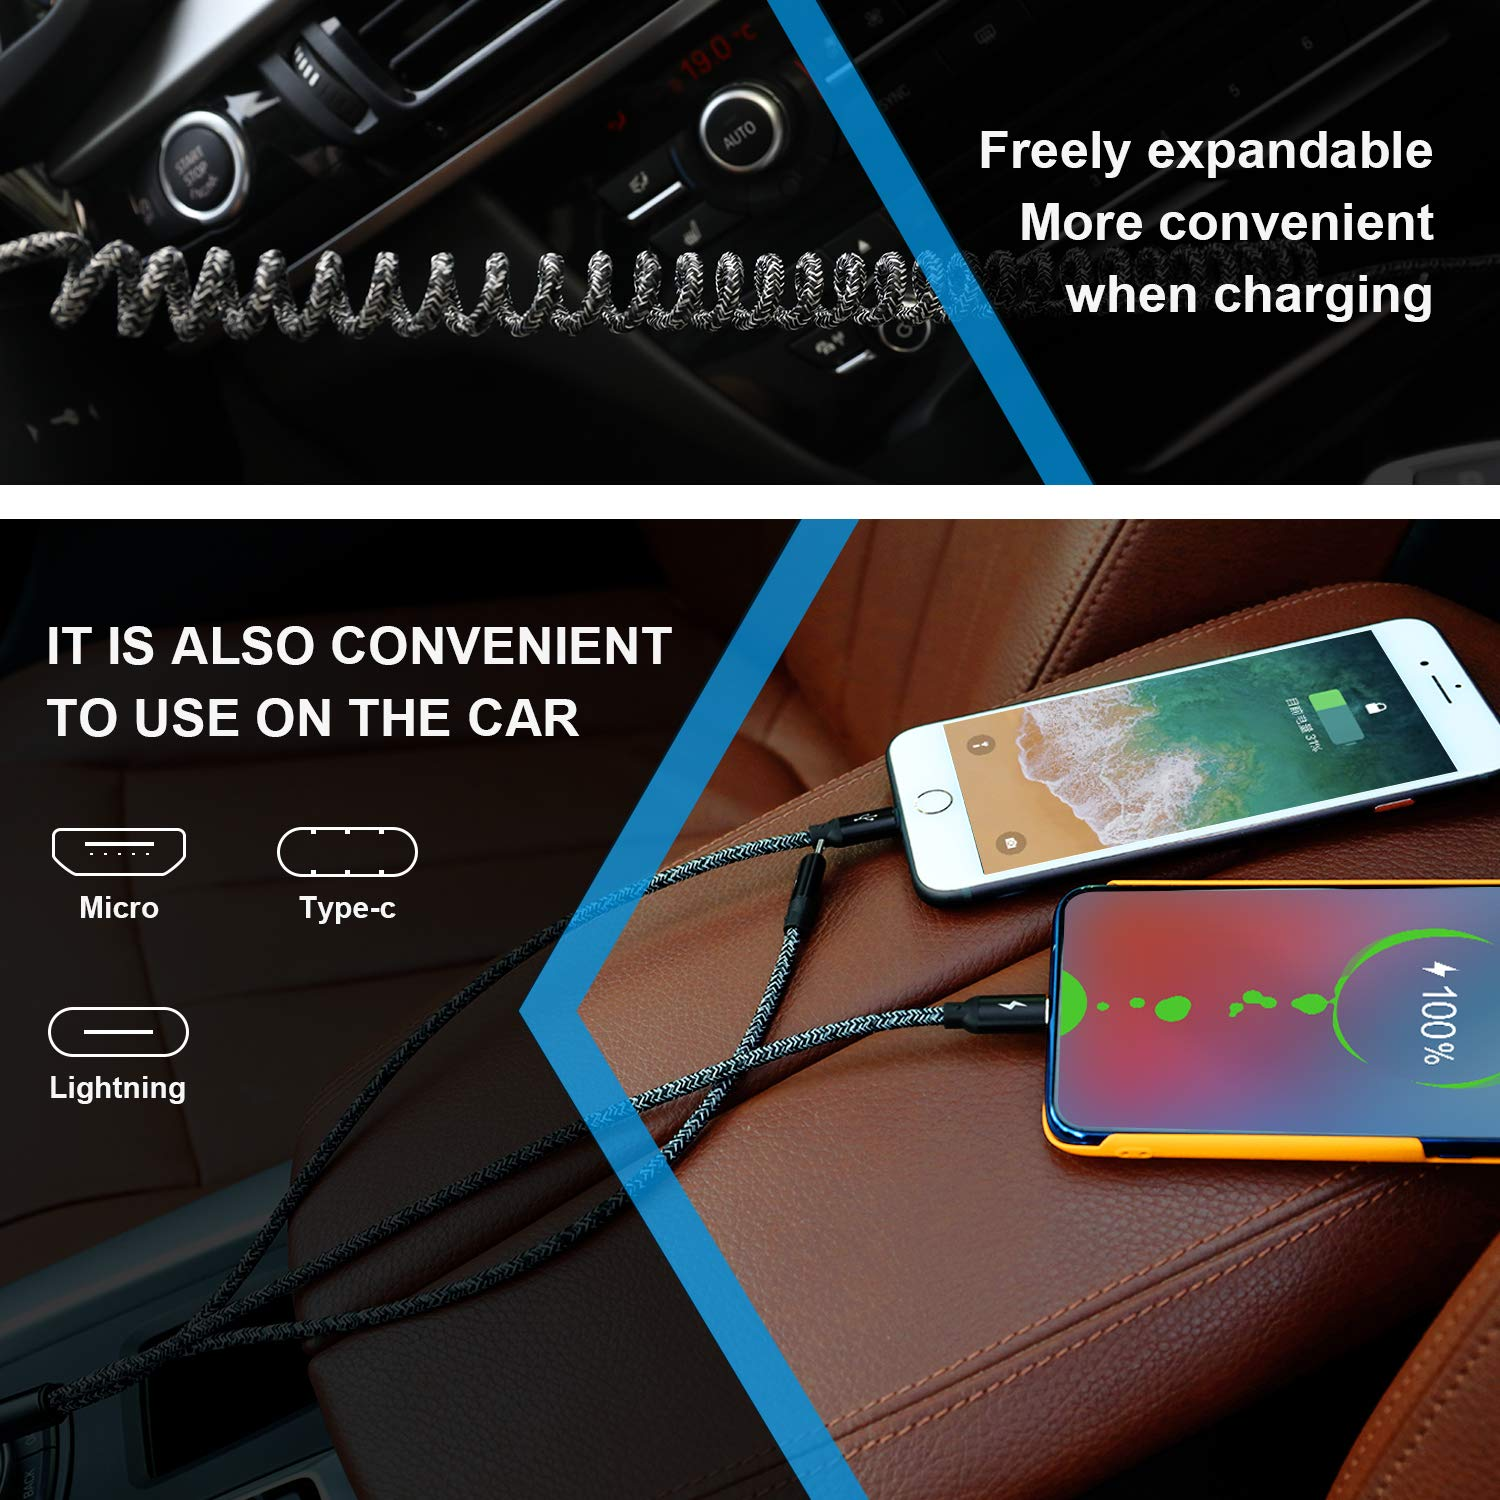 Multi Charging Cable,AOJI Nylon Braided Multi Retractable USB Cable 3 in 1 Car Phone Charger Cord Compatible for iPhone Xs/Xs Max/X/8/7 Plus, Samsung S10 S9 Note 9, Moto G7, LG G8 G7